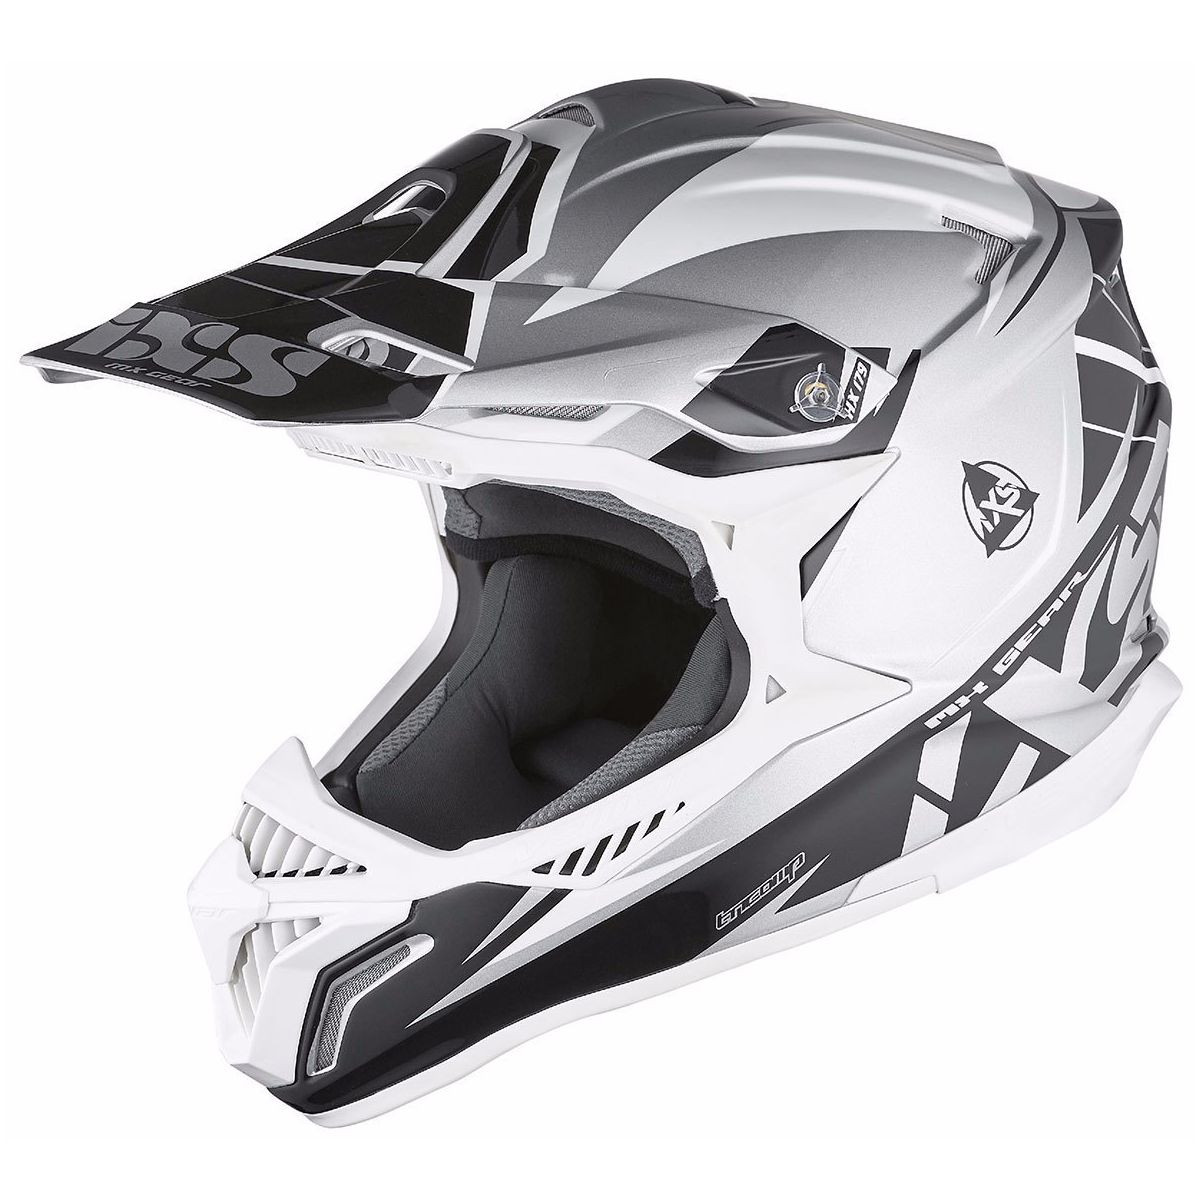 Casque Cross Ixs Hx179 Flash - Argent Noir Blanc